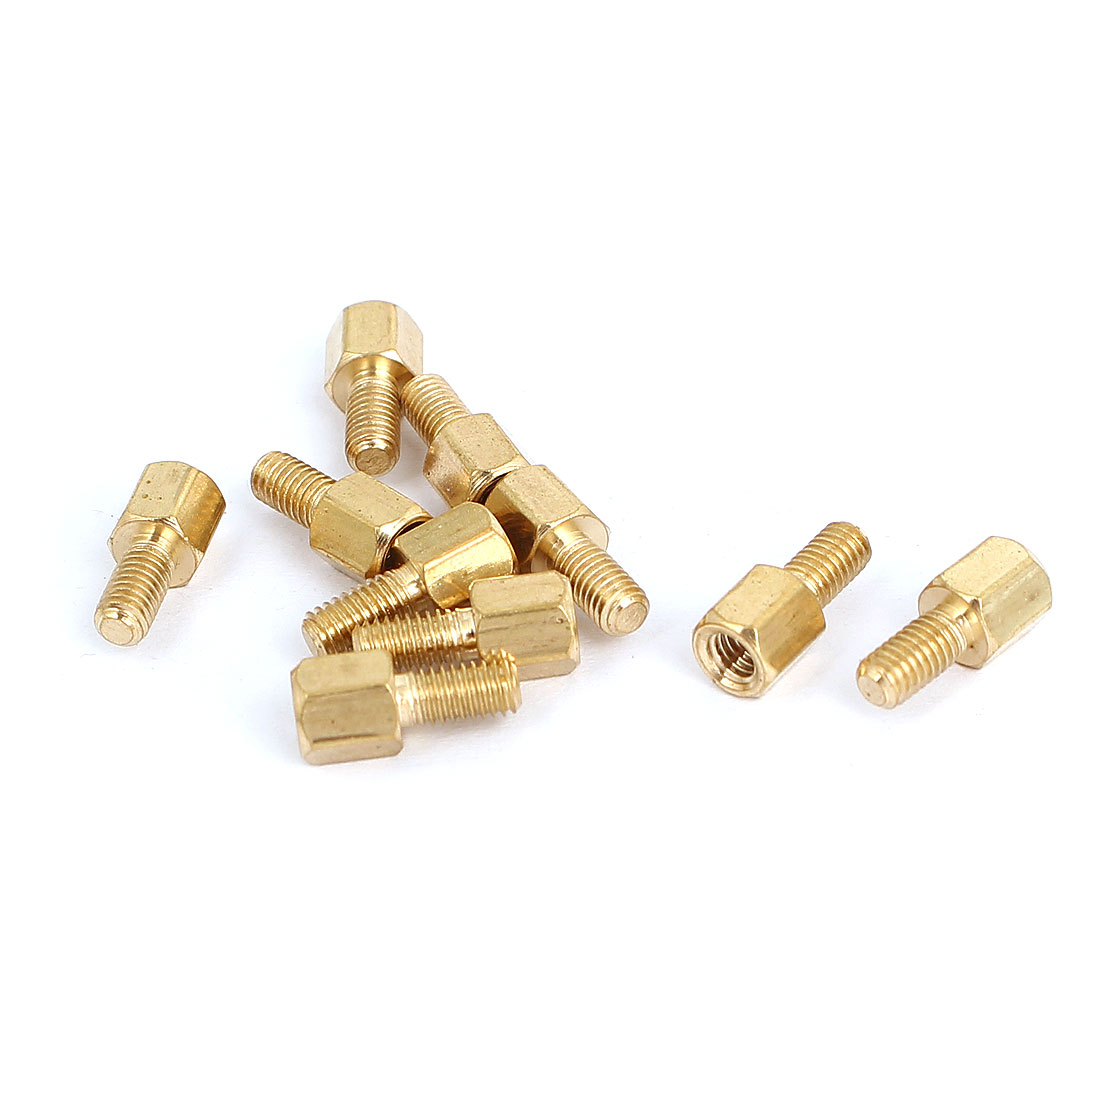 M3 Female x Male Brass Hexagonal Pillar Standoff Spacer Screws Bolt 5+6mm 10pcs